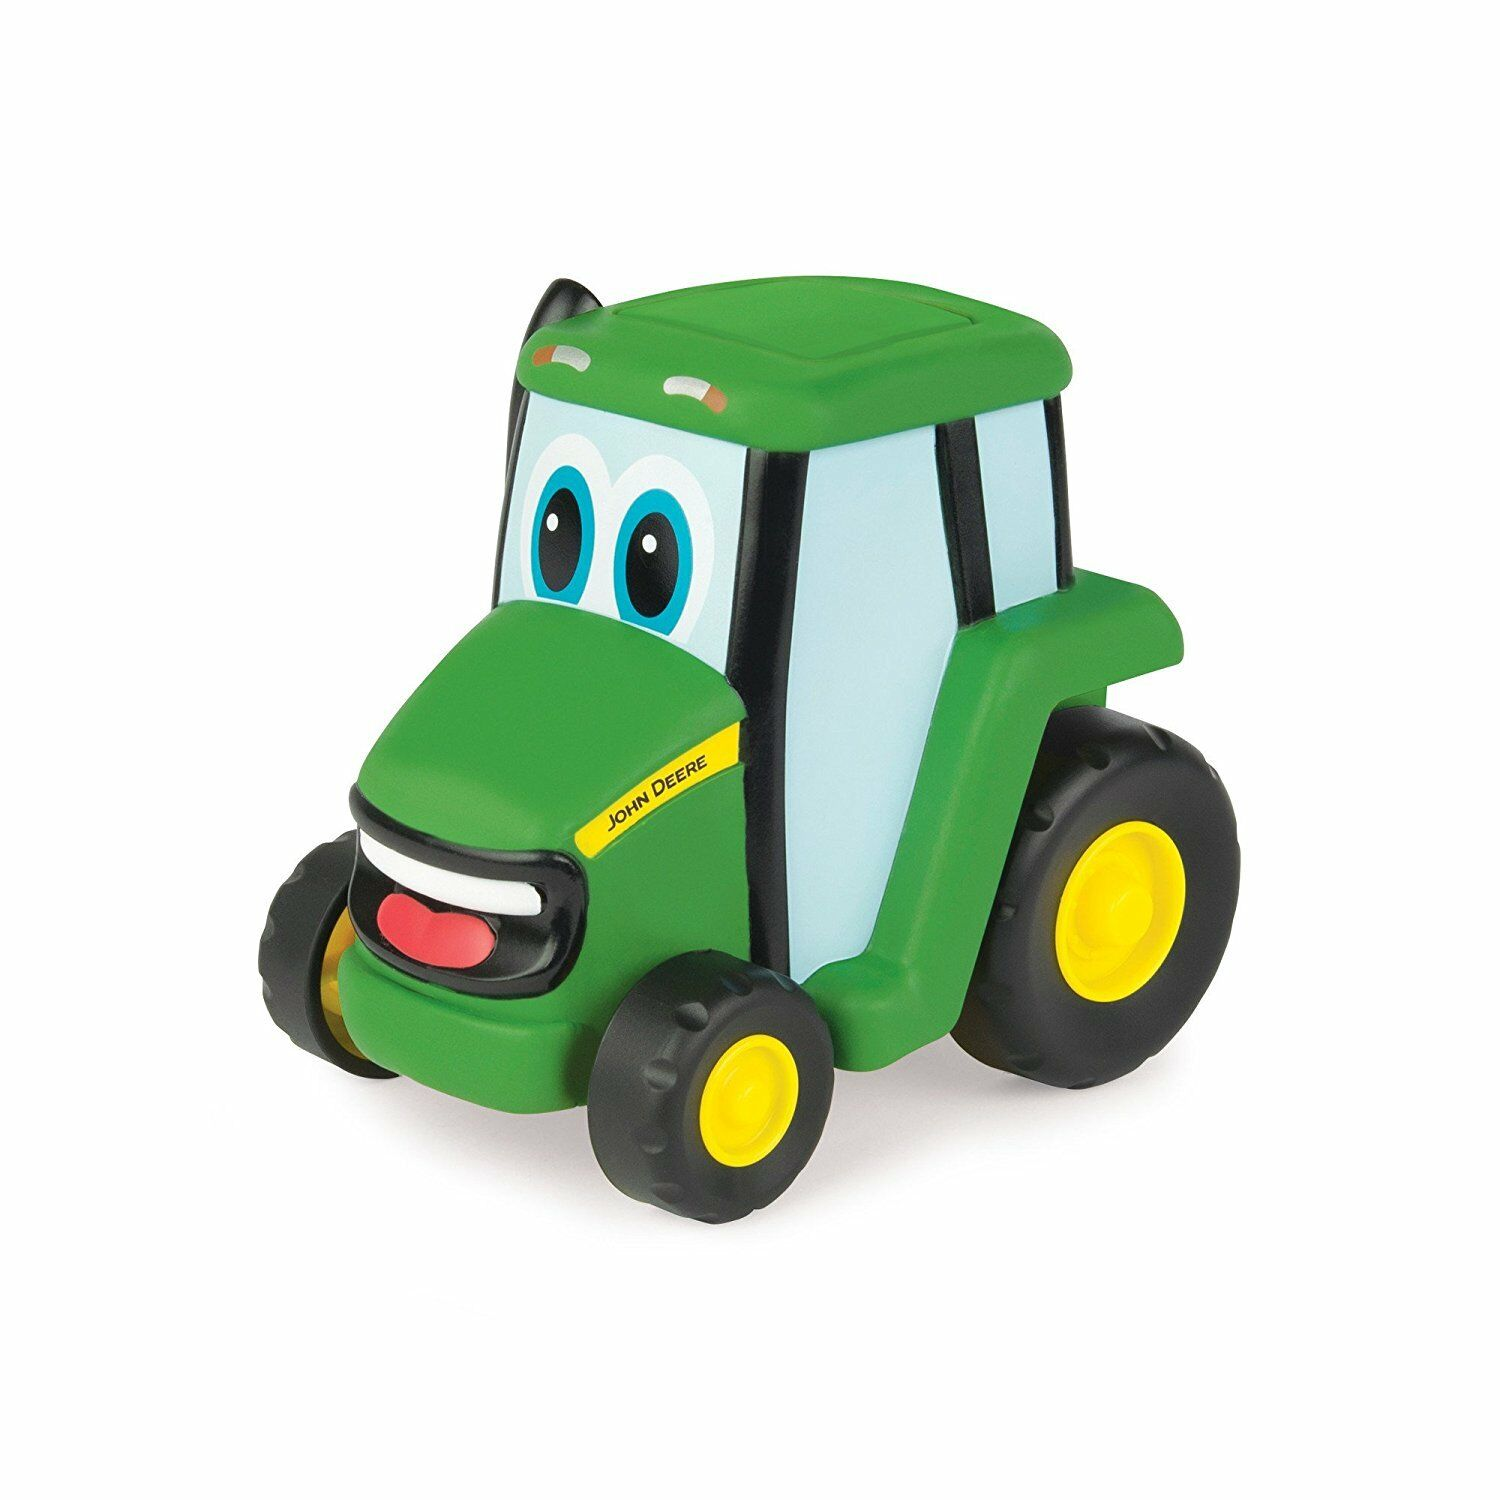 NEW John Deere Johnny Push 'N' Roll Tractor, 2 Ways to Play, Ages 18M+(LP67305)